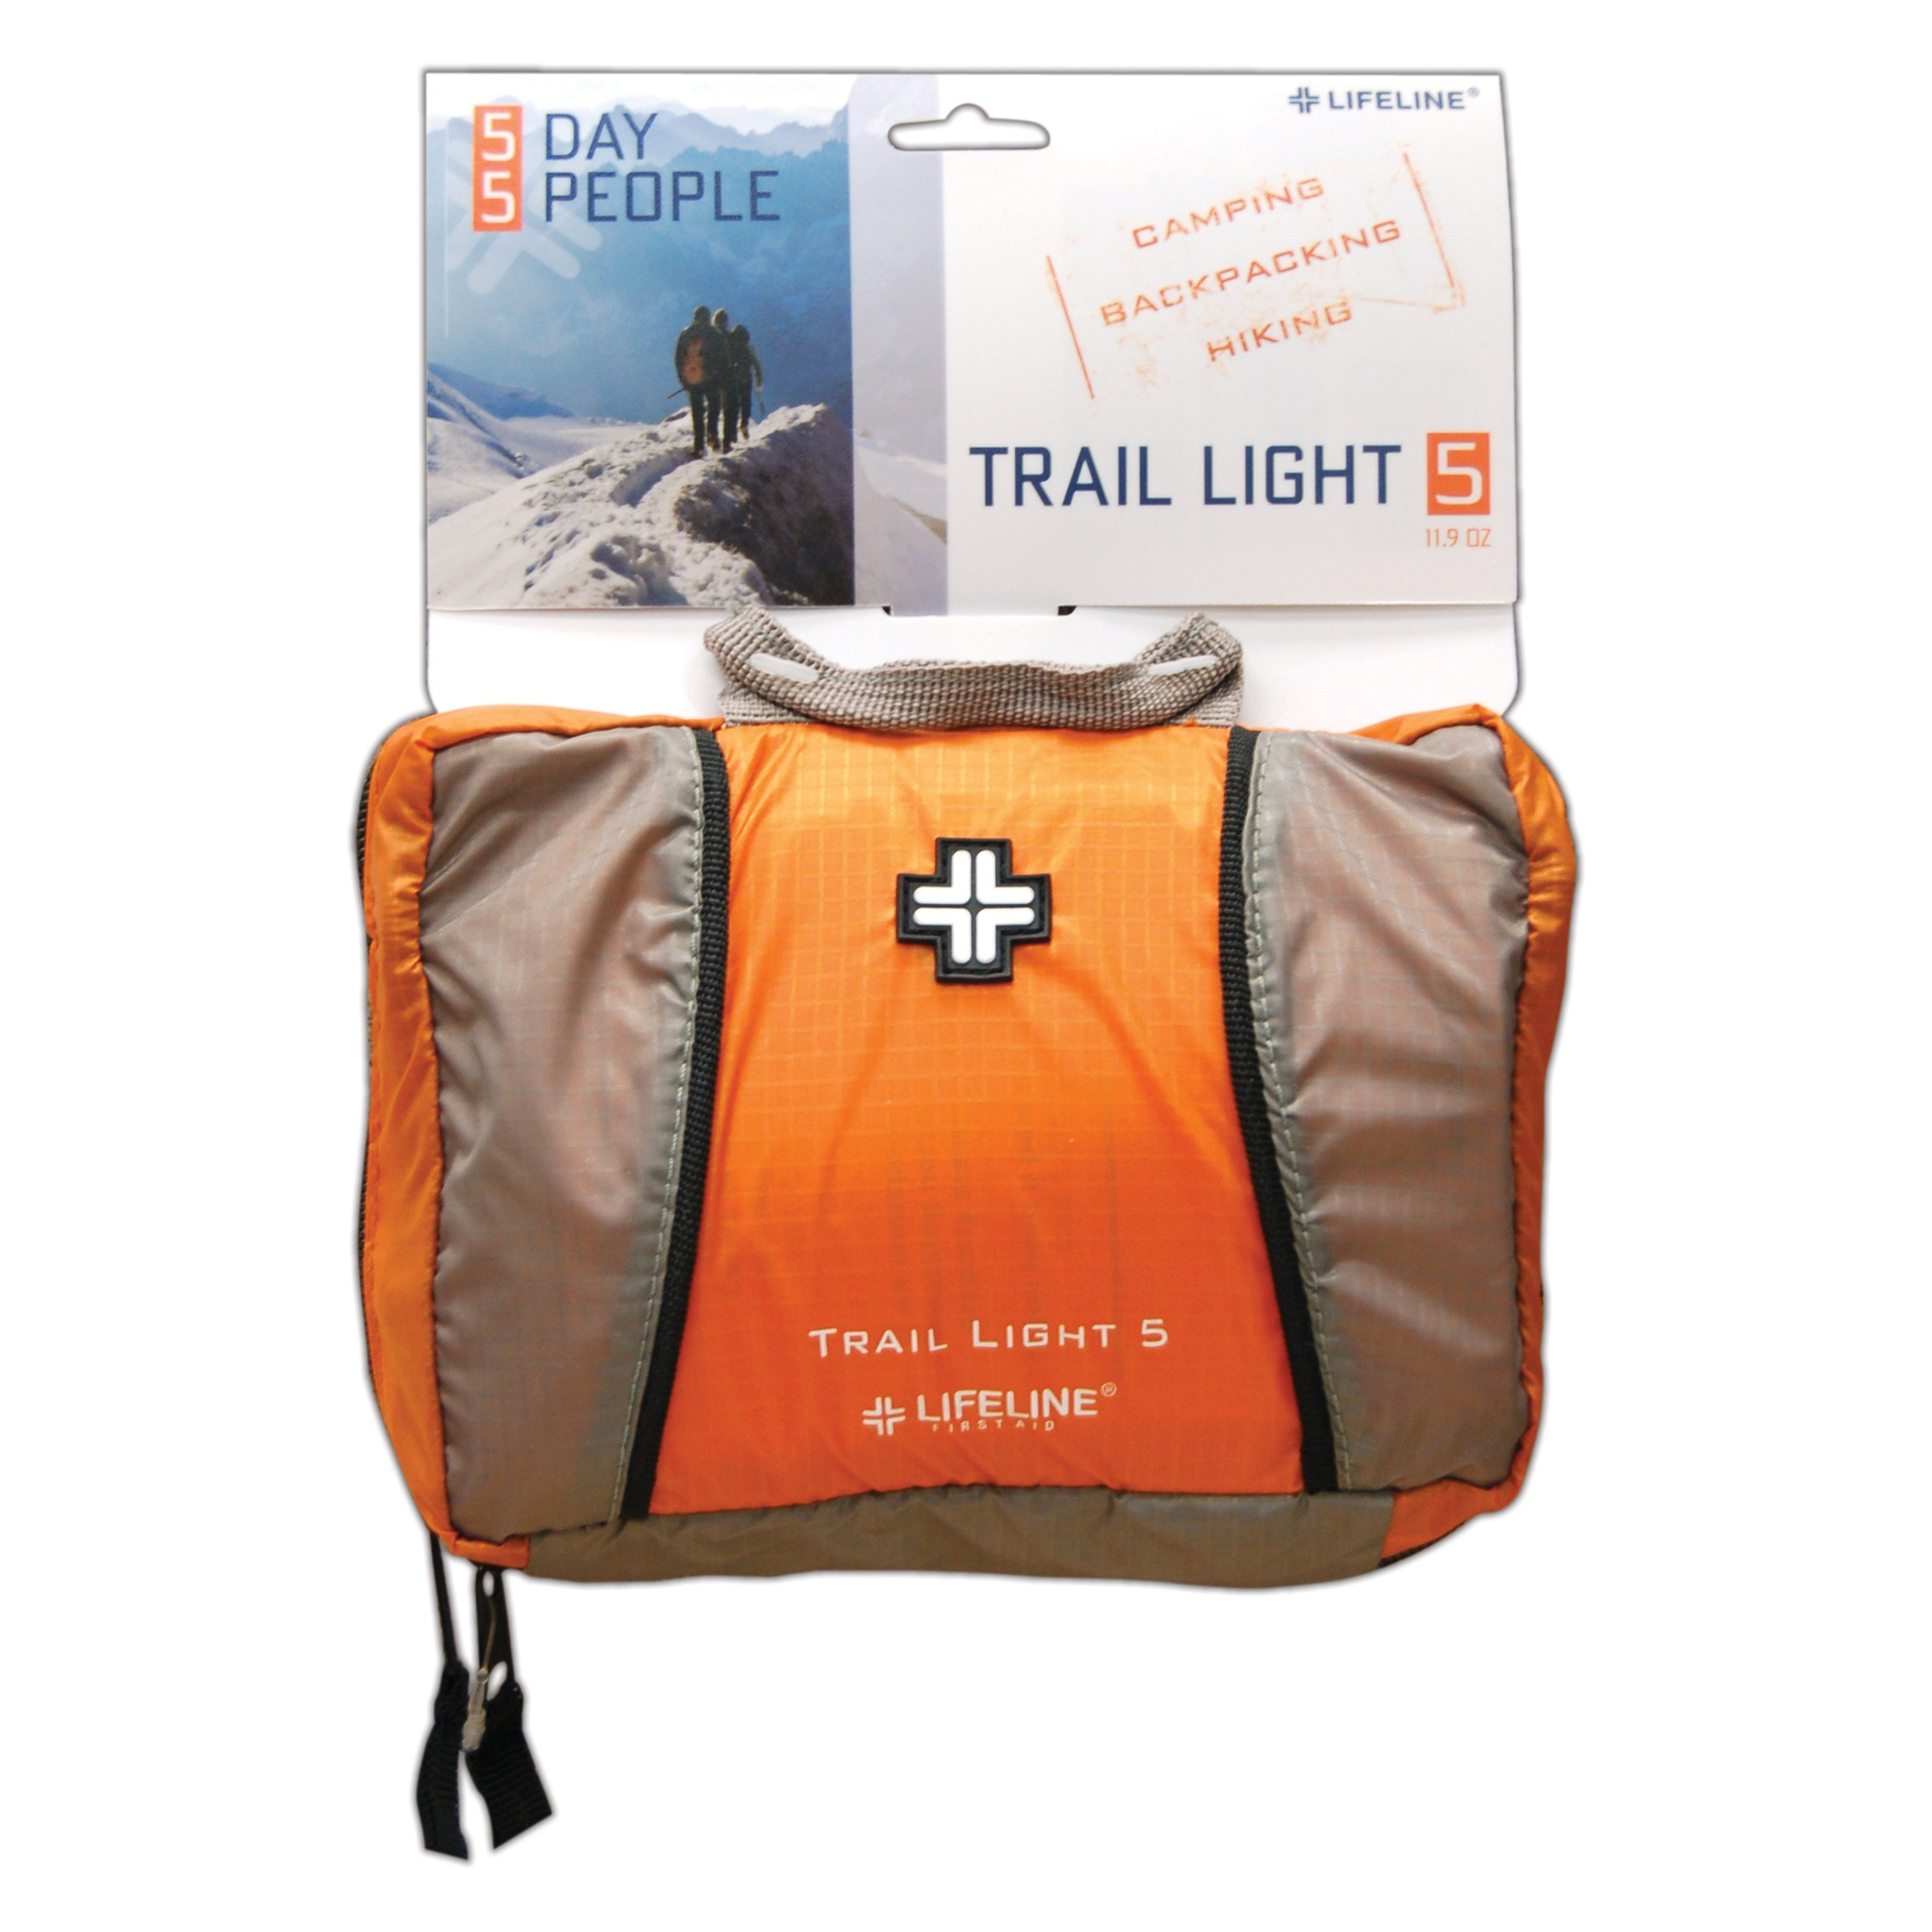 Lifeline Trail Light 5 First Aid Kit 99 Pieces by Lifeline